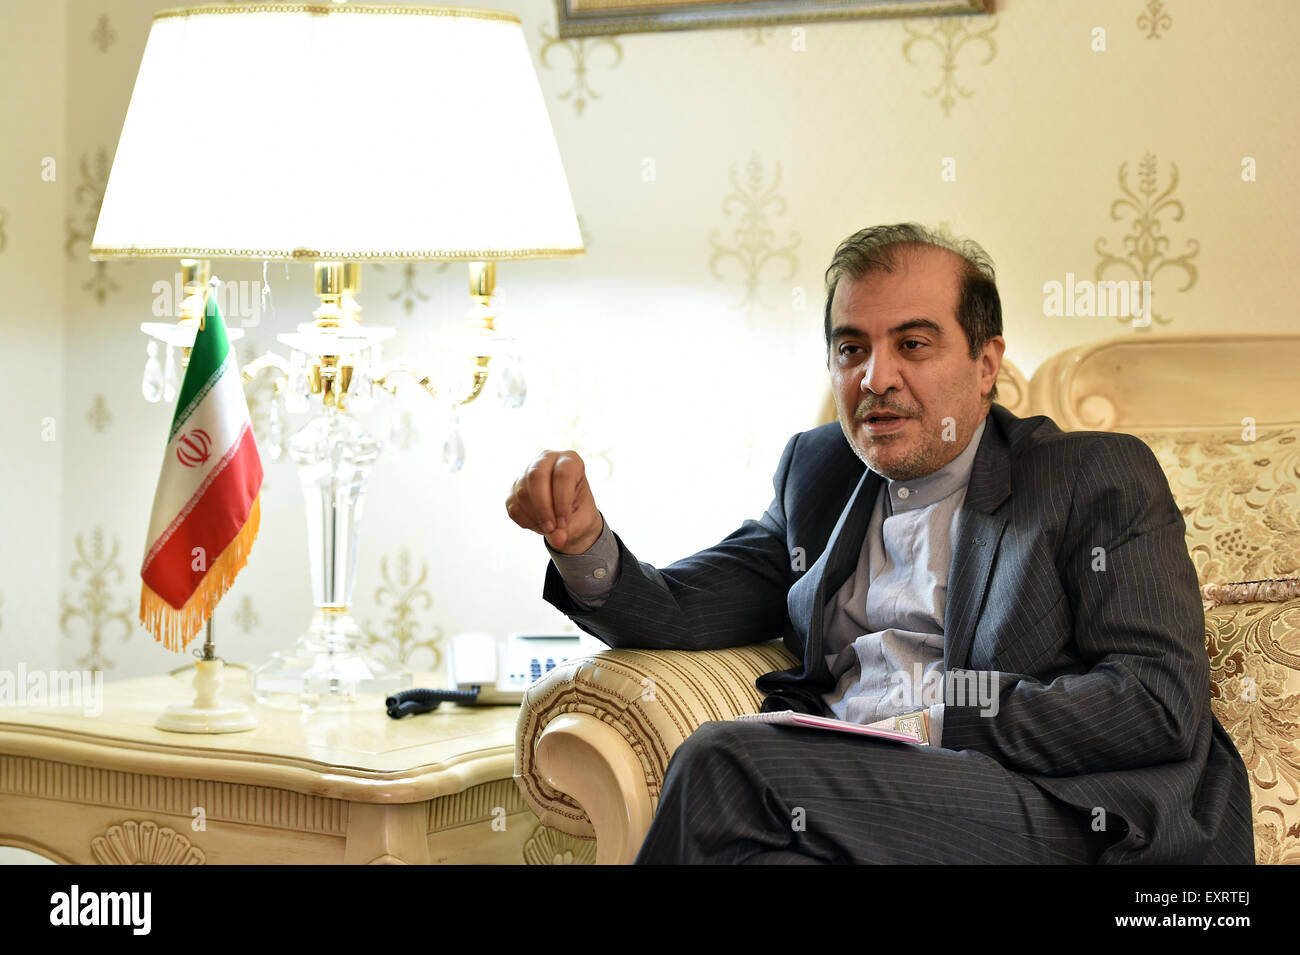 Beijing, China. 16th July, 2015. Iranian ambassador to China Ali Asghar Khaji speaks during an interview in Beijing, - Stock Image